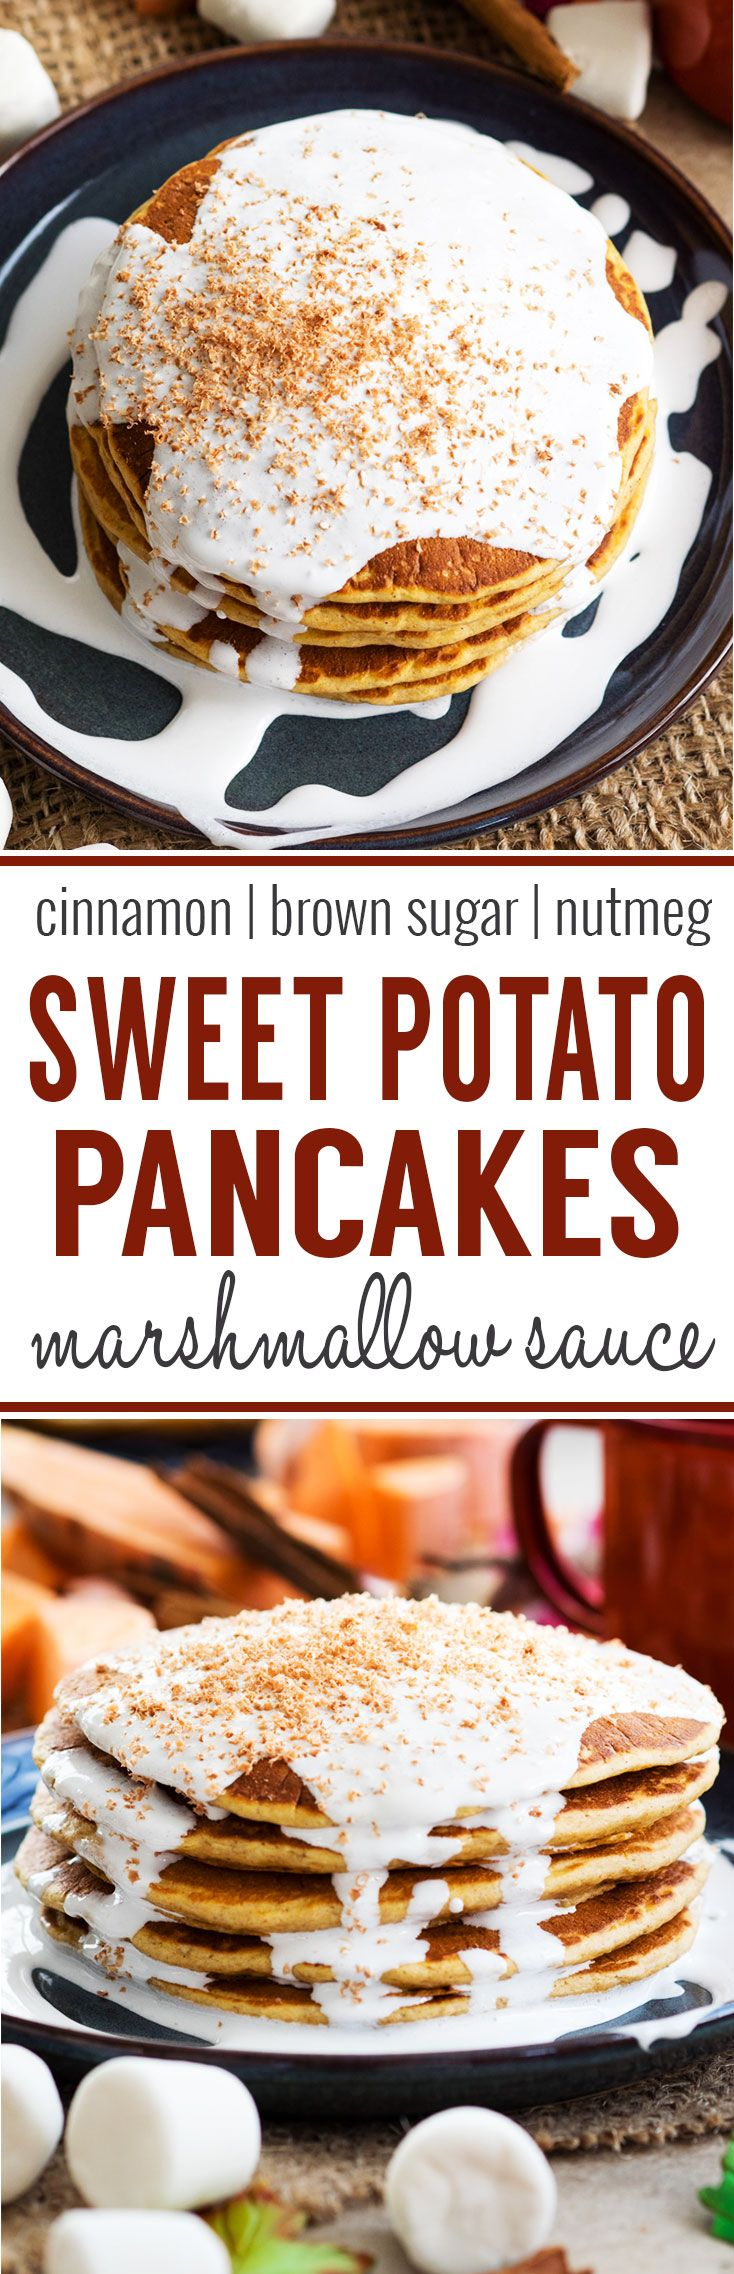 Sweet Potato Pancakes with Marshmallow Sauce - filled with cinnamon, brown sugar and nutmeg for a festive fall breakfast. Made with real sweet potatoes! Enjoy this recipe as a Thanksgiving breakfast or brunch.